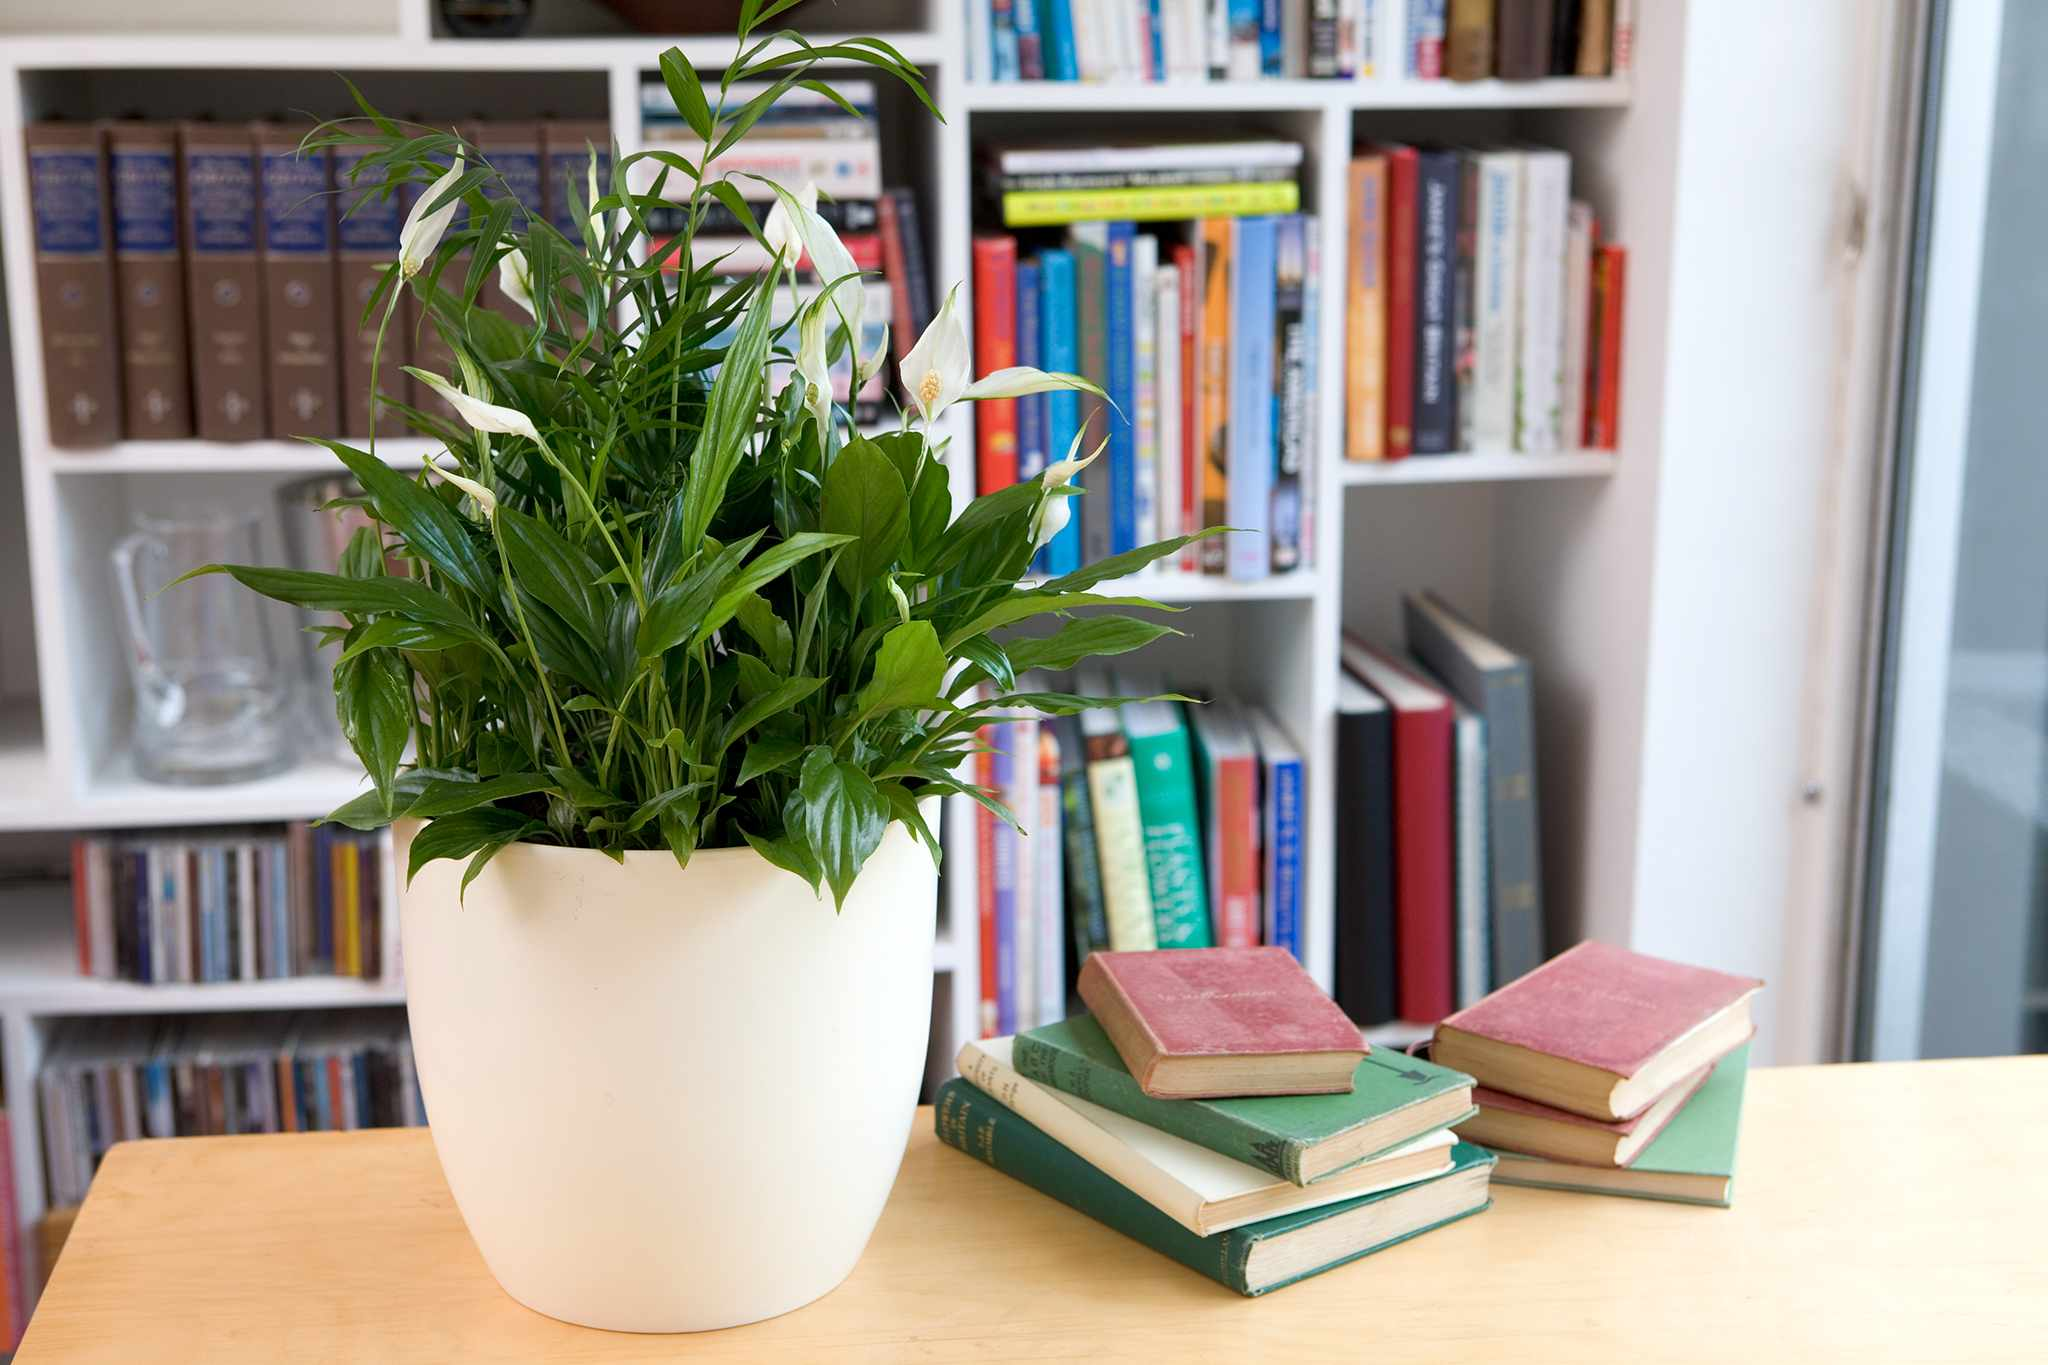 Plant an indoor foliage display